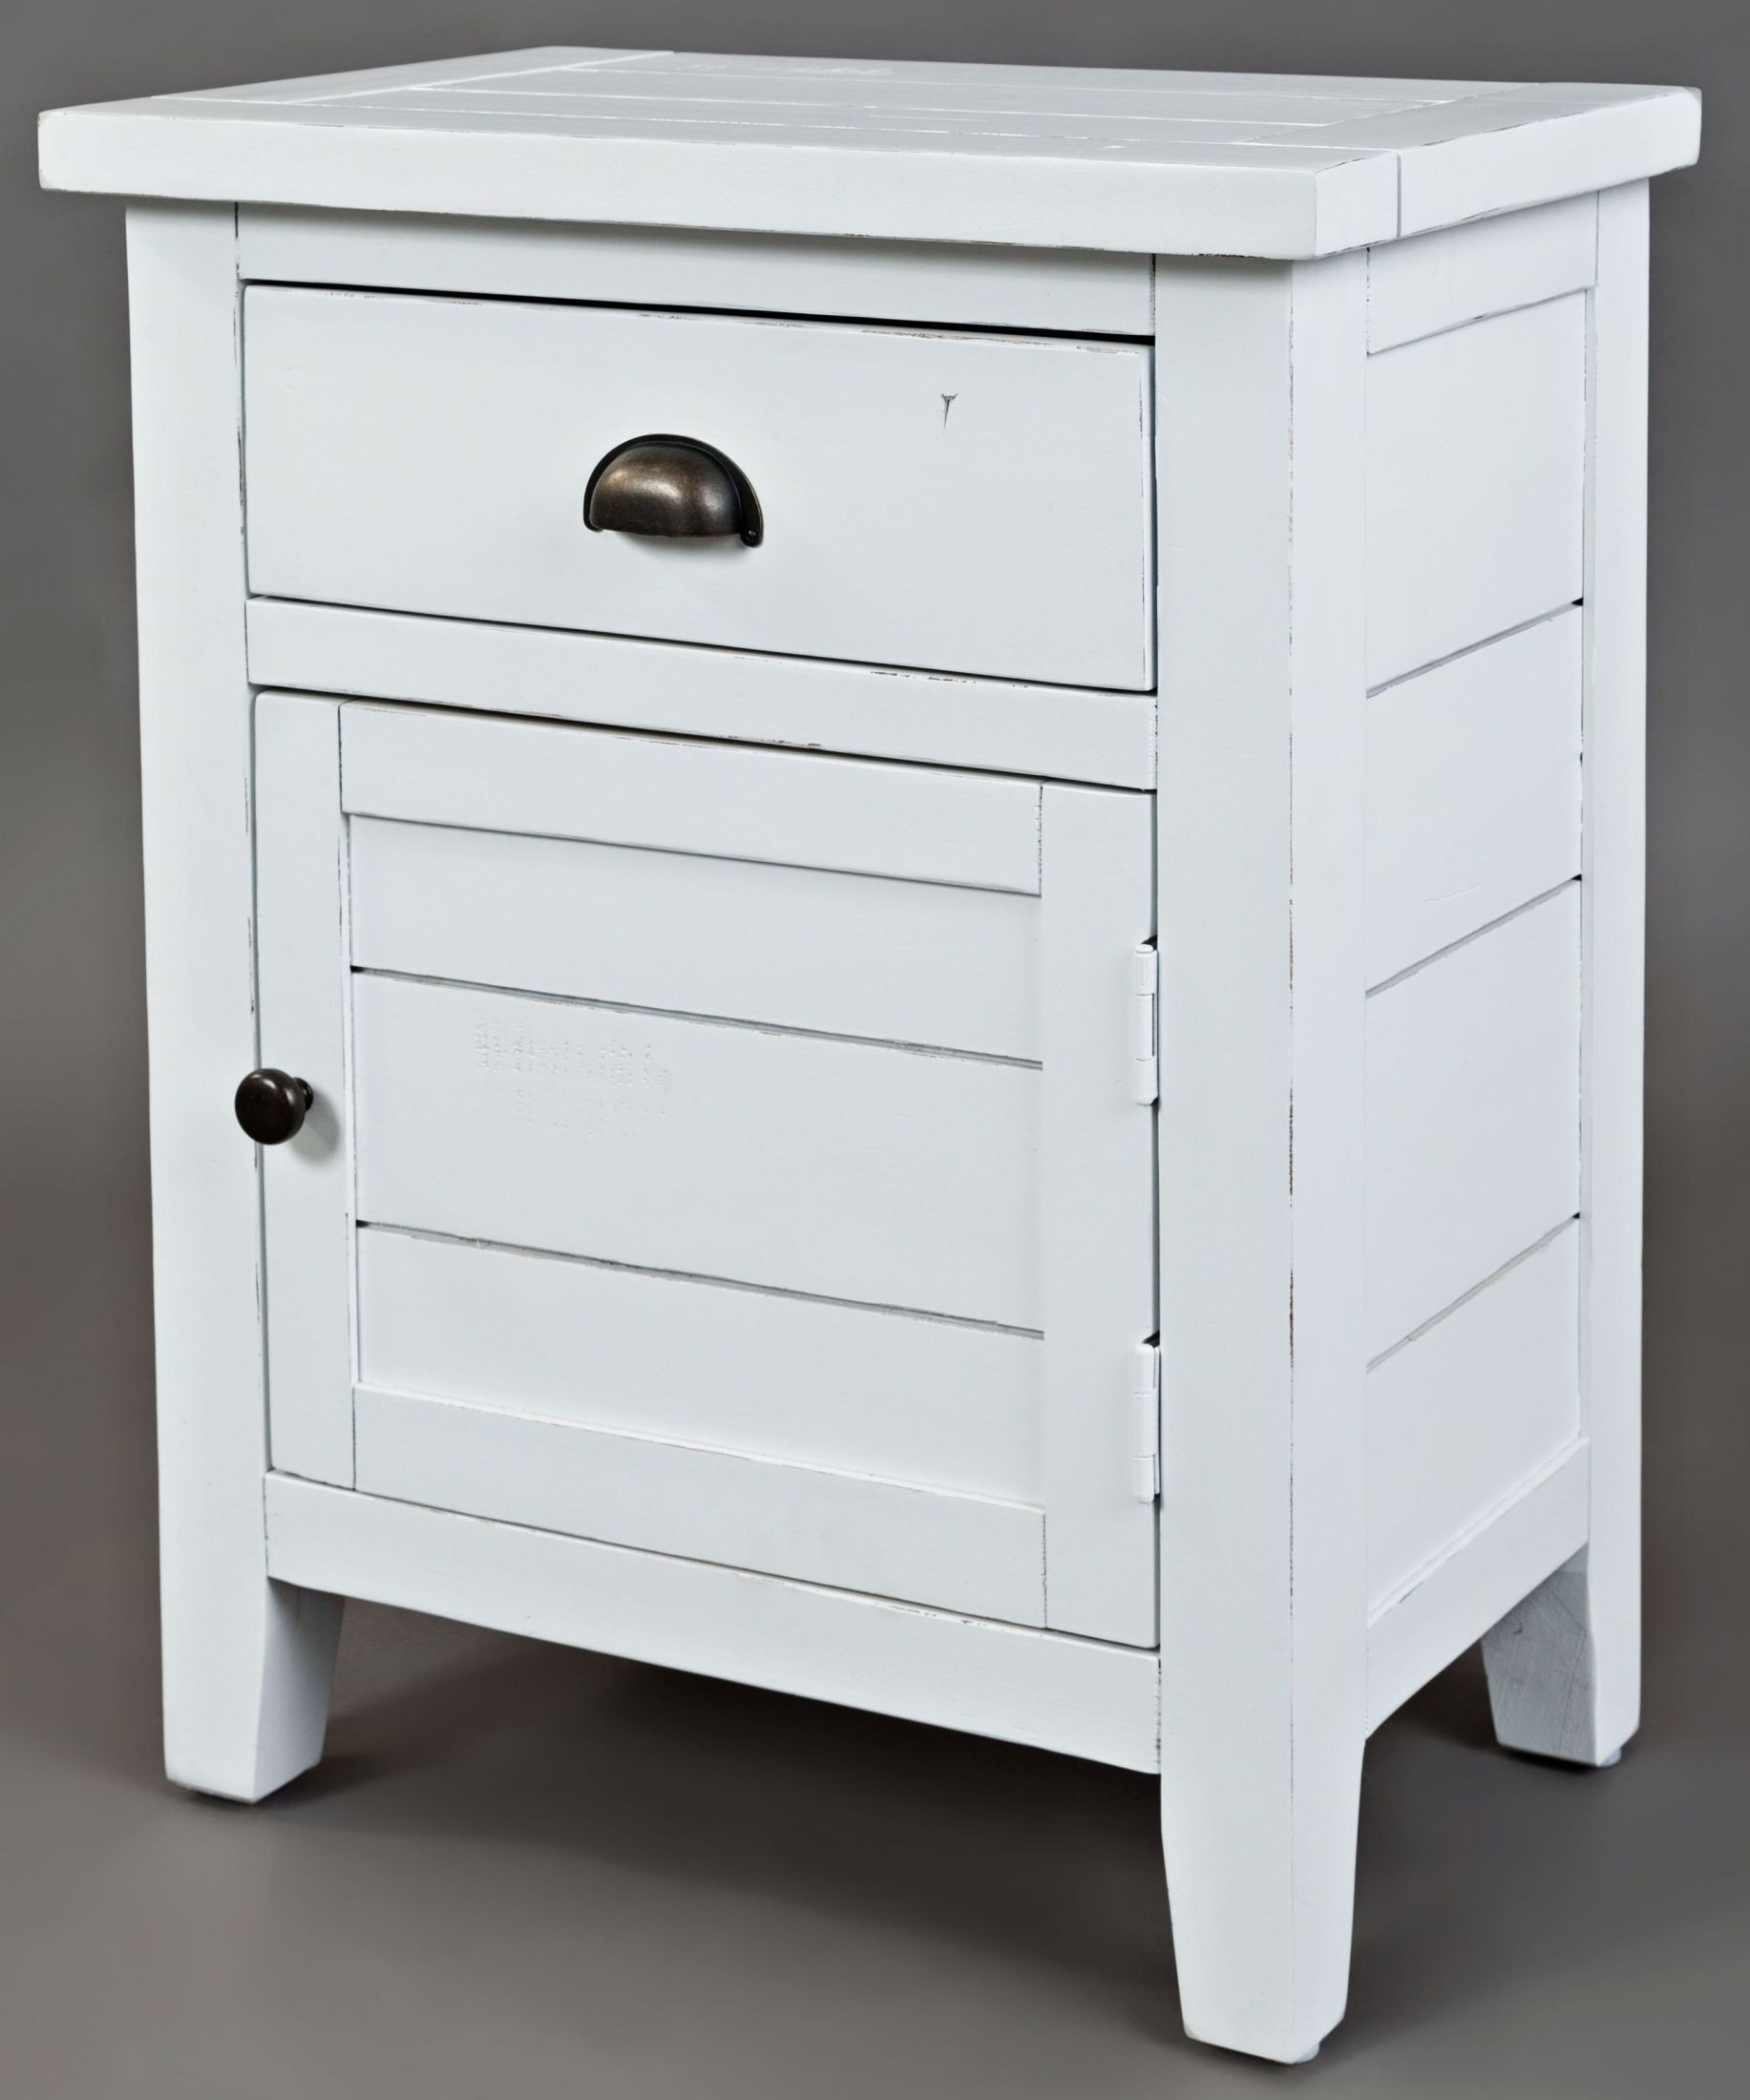 jofran artisans craft weathered white accent table artisan angle with drawers media gallery hexagon coffee house and home decorating colourful marble desk pottery barn round chair